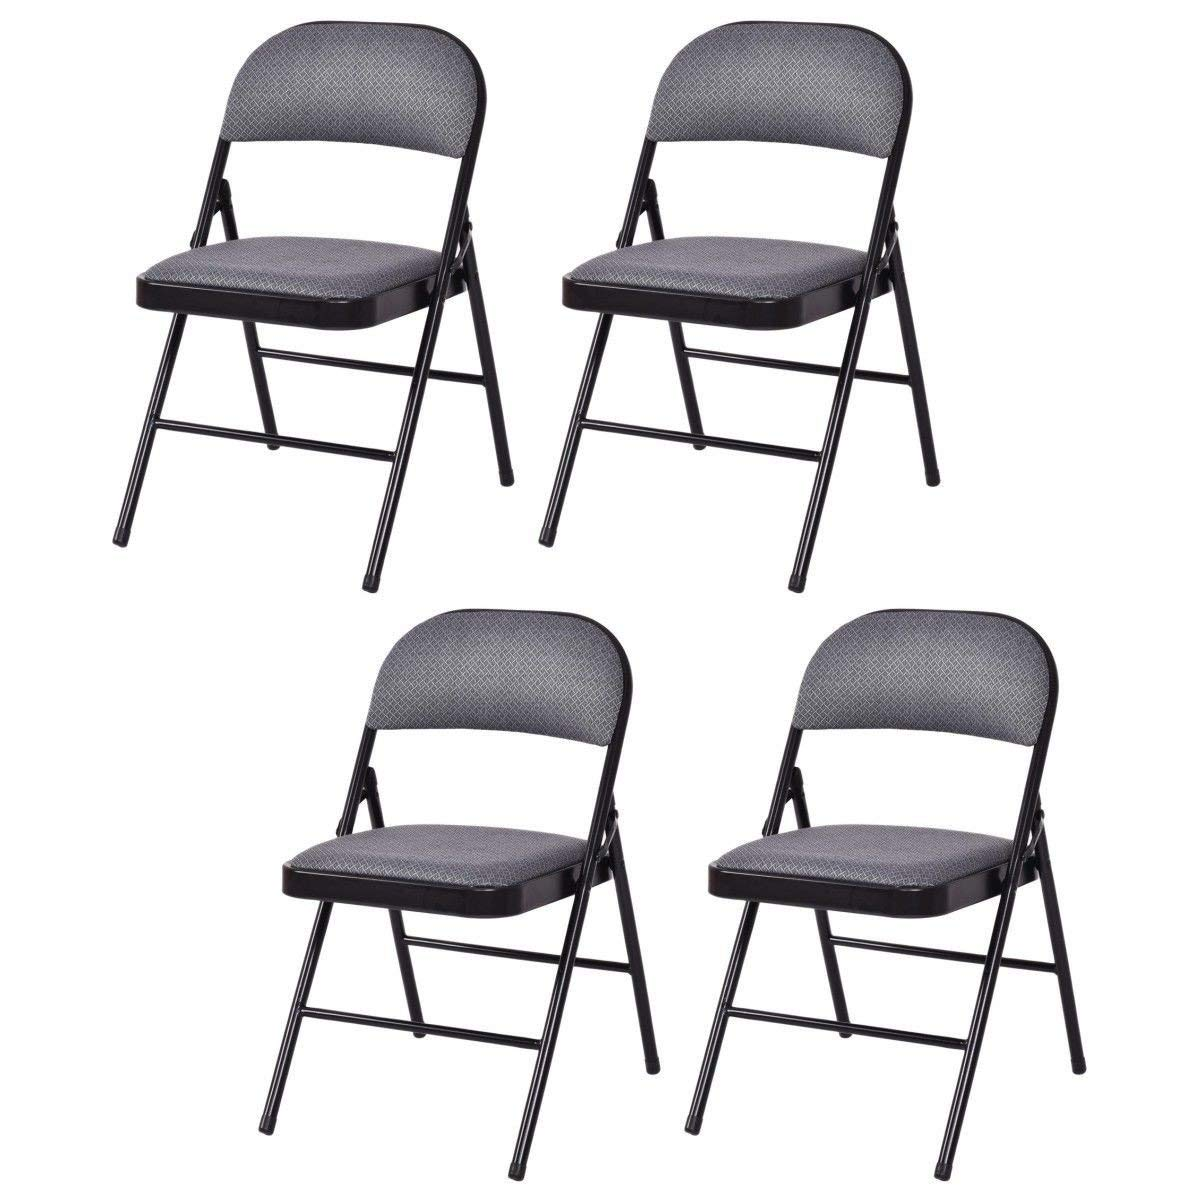 Cheap Folding Padded Lawn Chairs, find Folding Padded Lawn